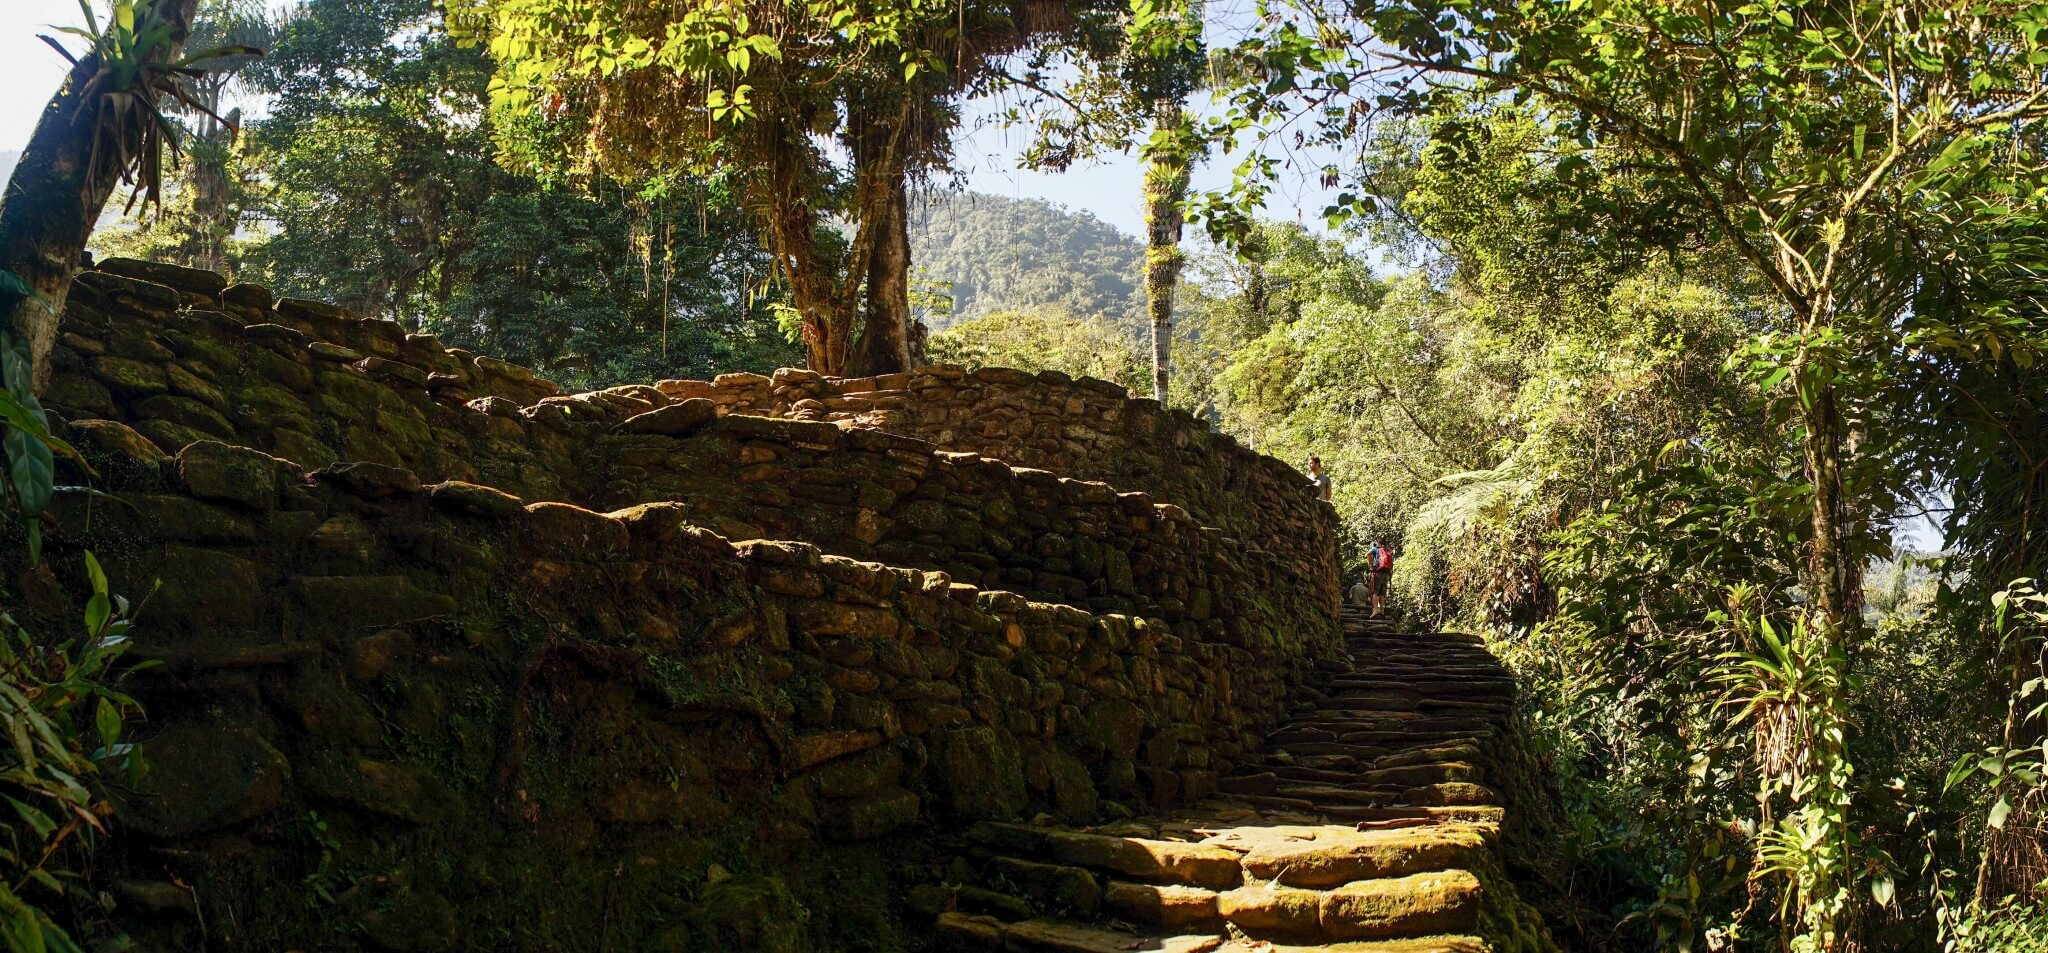 Ciudad Perdida - The Lost City, Colombia